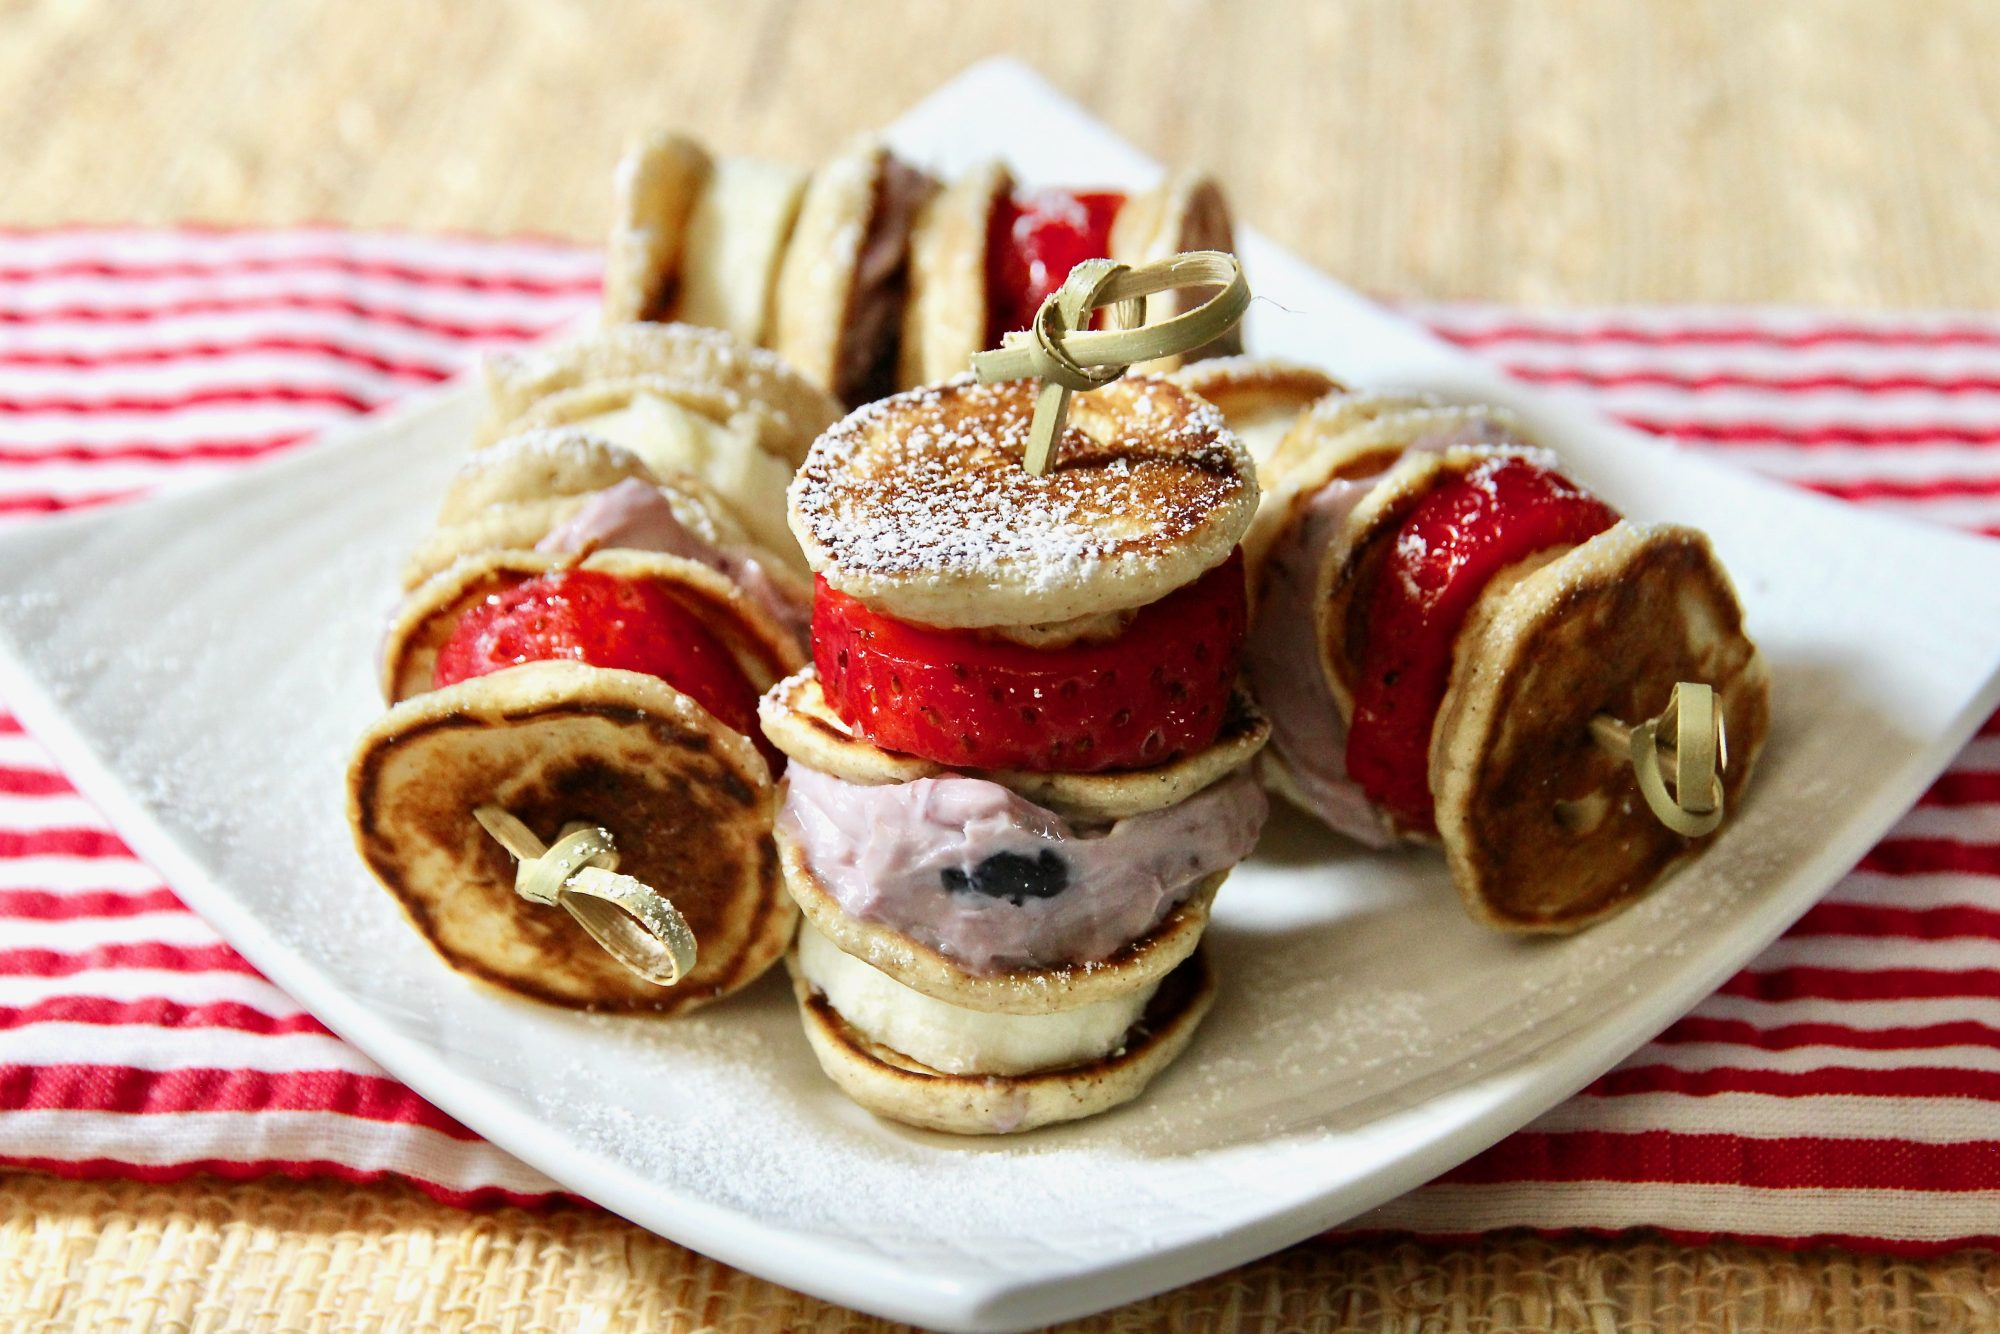 bite-size pancakes threaded on skewers with sliced bananas, fruited cream cheese, and sliced strawberries